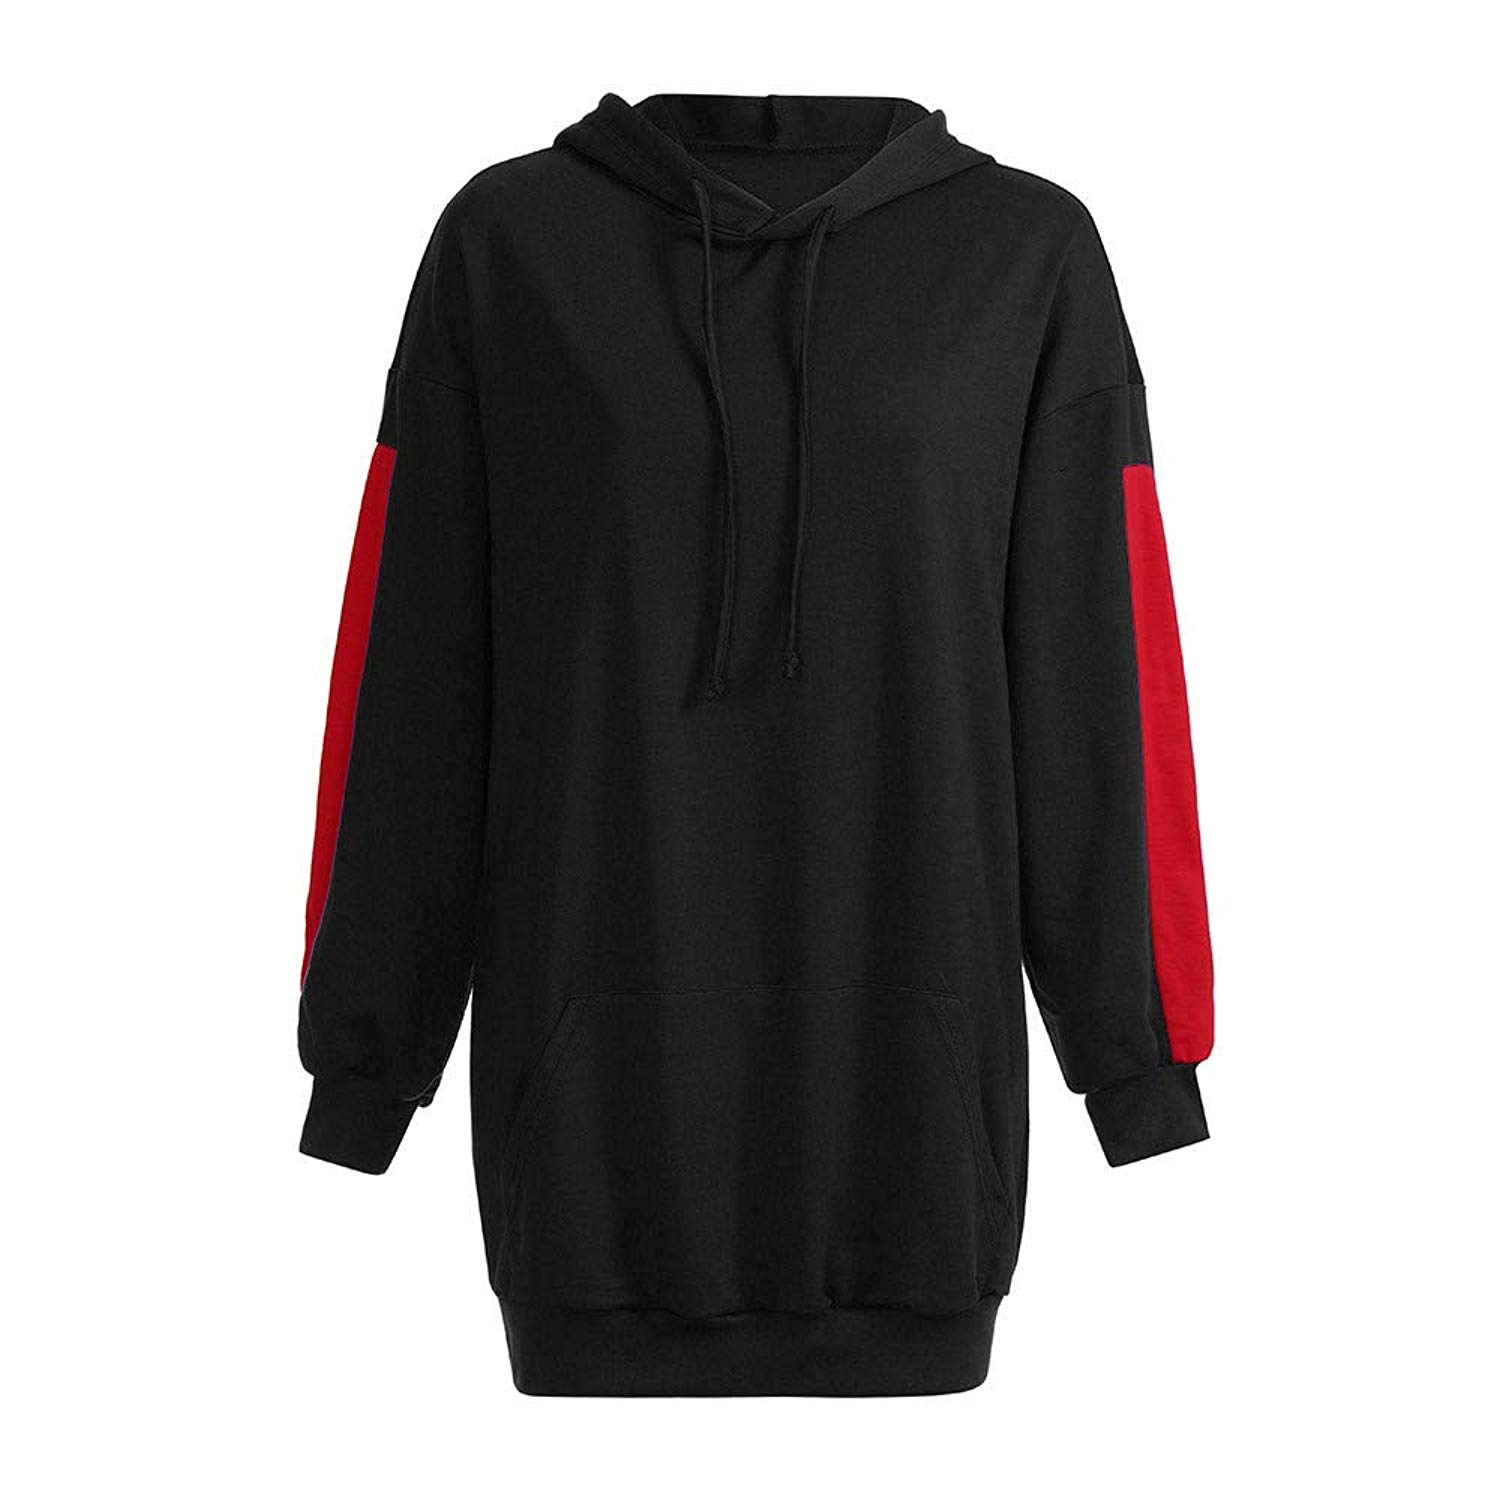 8be12639863831 Get Quotations · Autumn Solid Patchwork Drawstring Hoodie Dress Loose Fit Long  Sleeve Tunic Sweatshirt Pullover Long Tops with